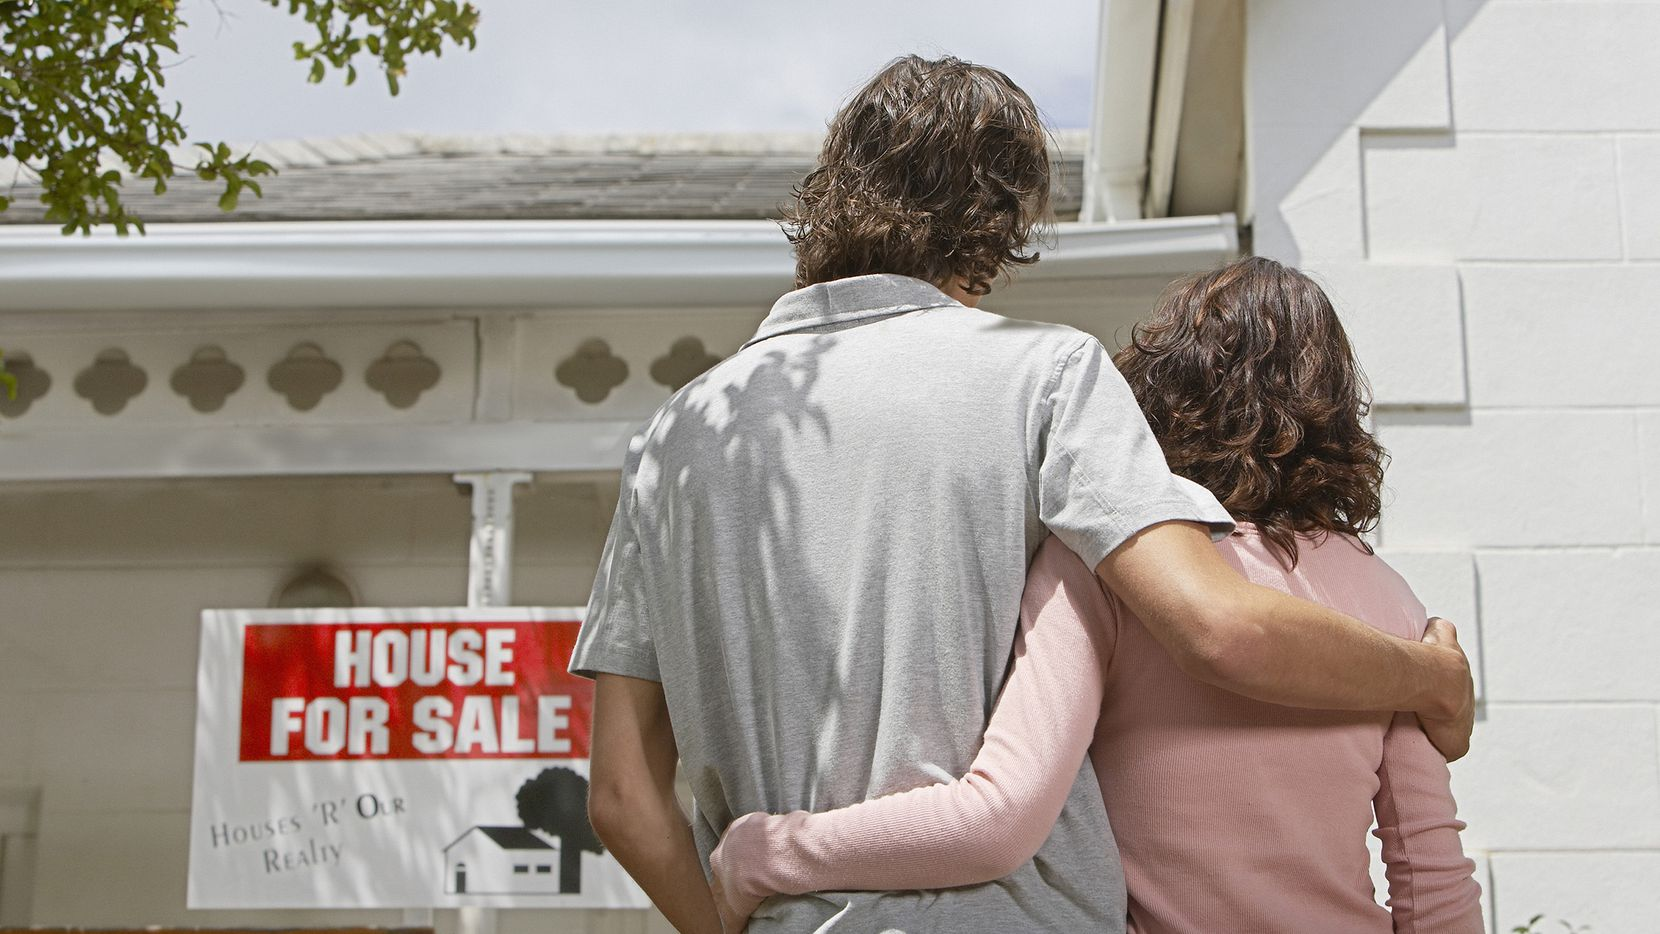 Because owners now stay an average of 13 years in their home, five years longer than in 2010, according to research firm Redfin, fewer homes are going up for sale.